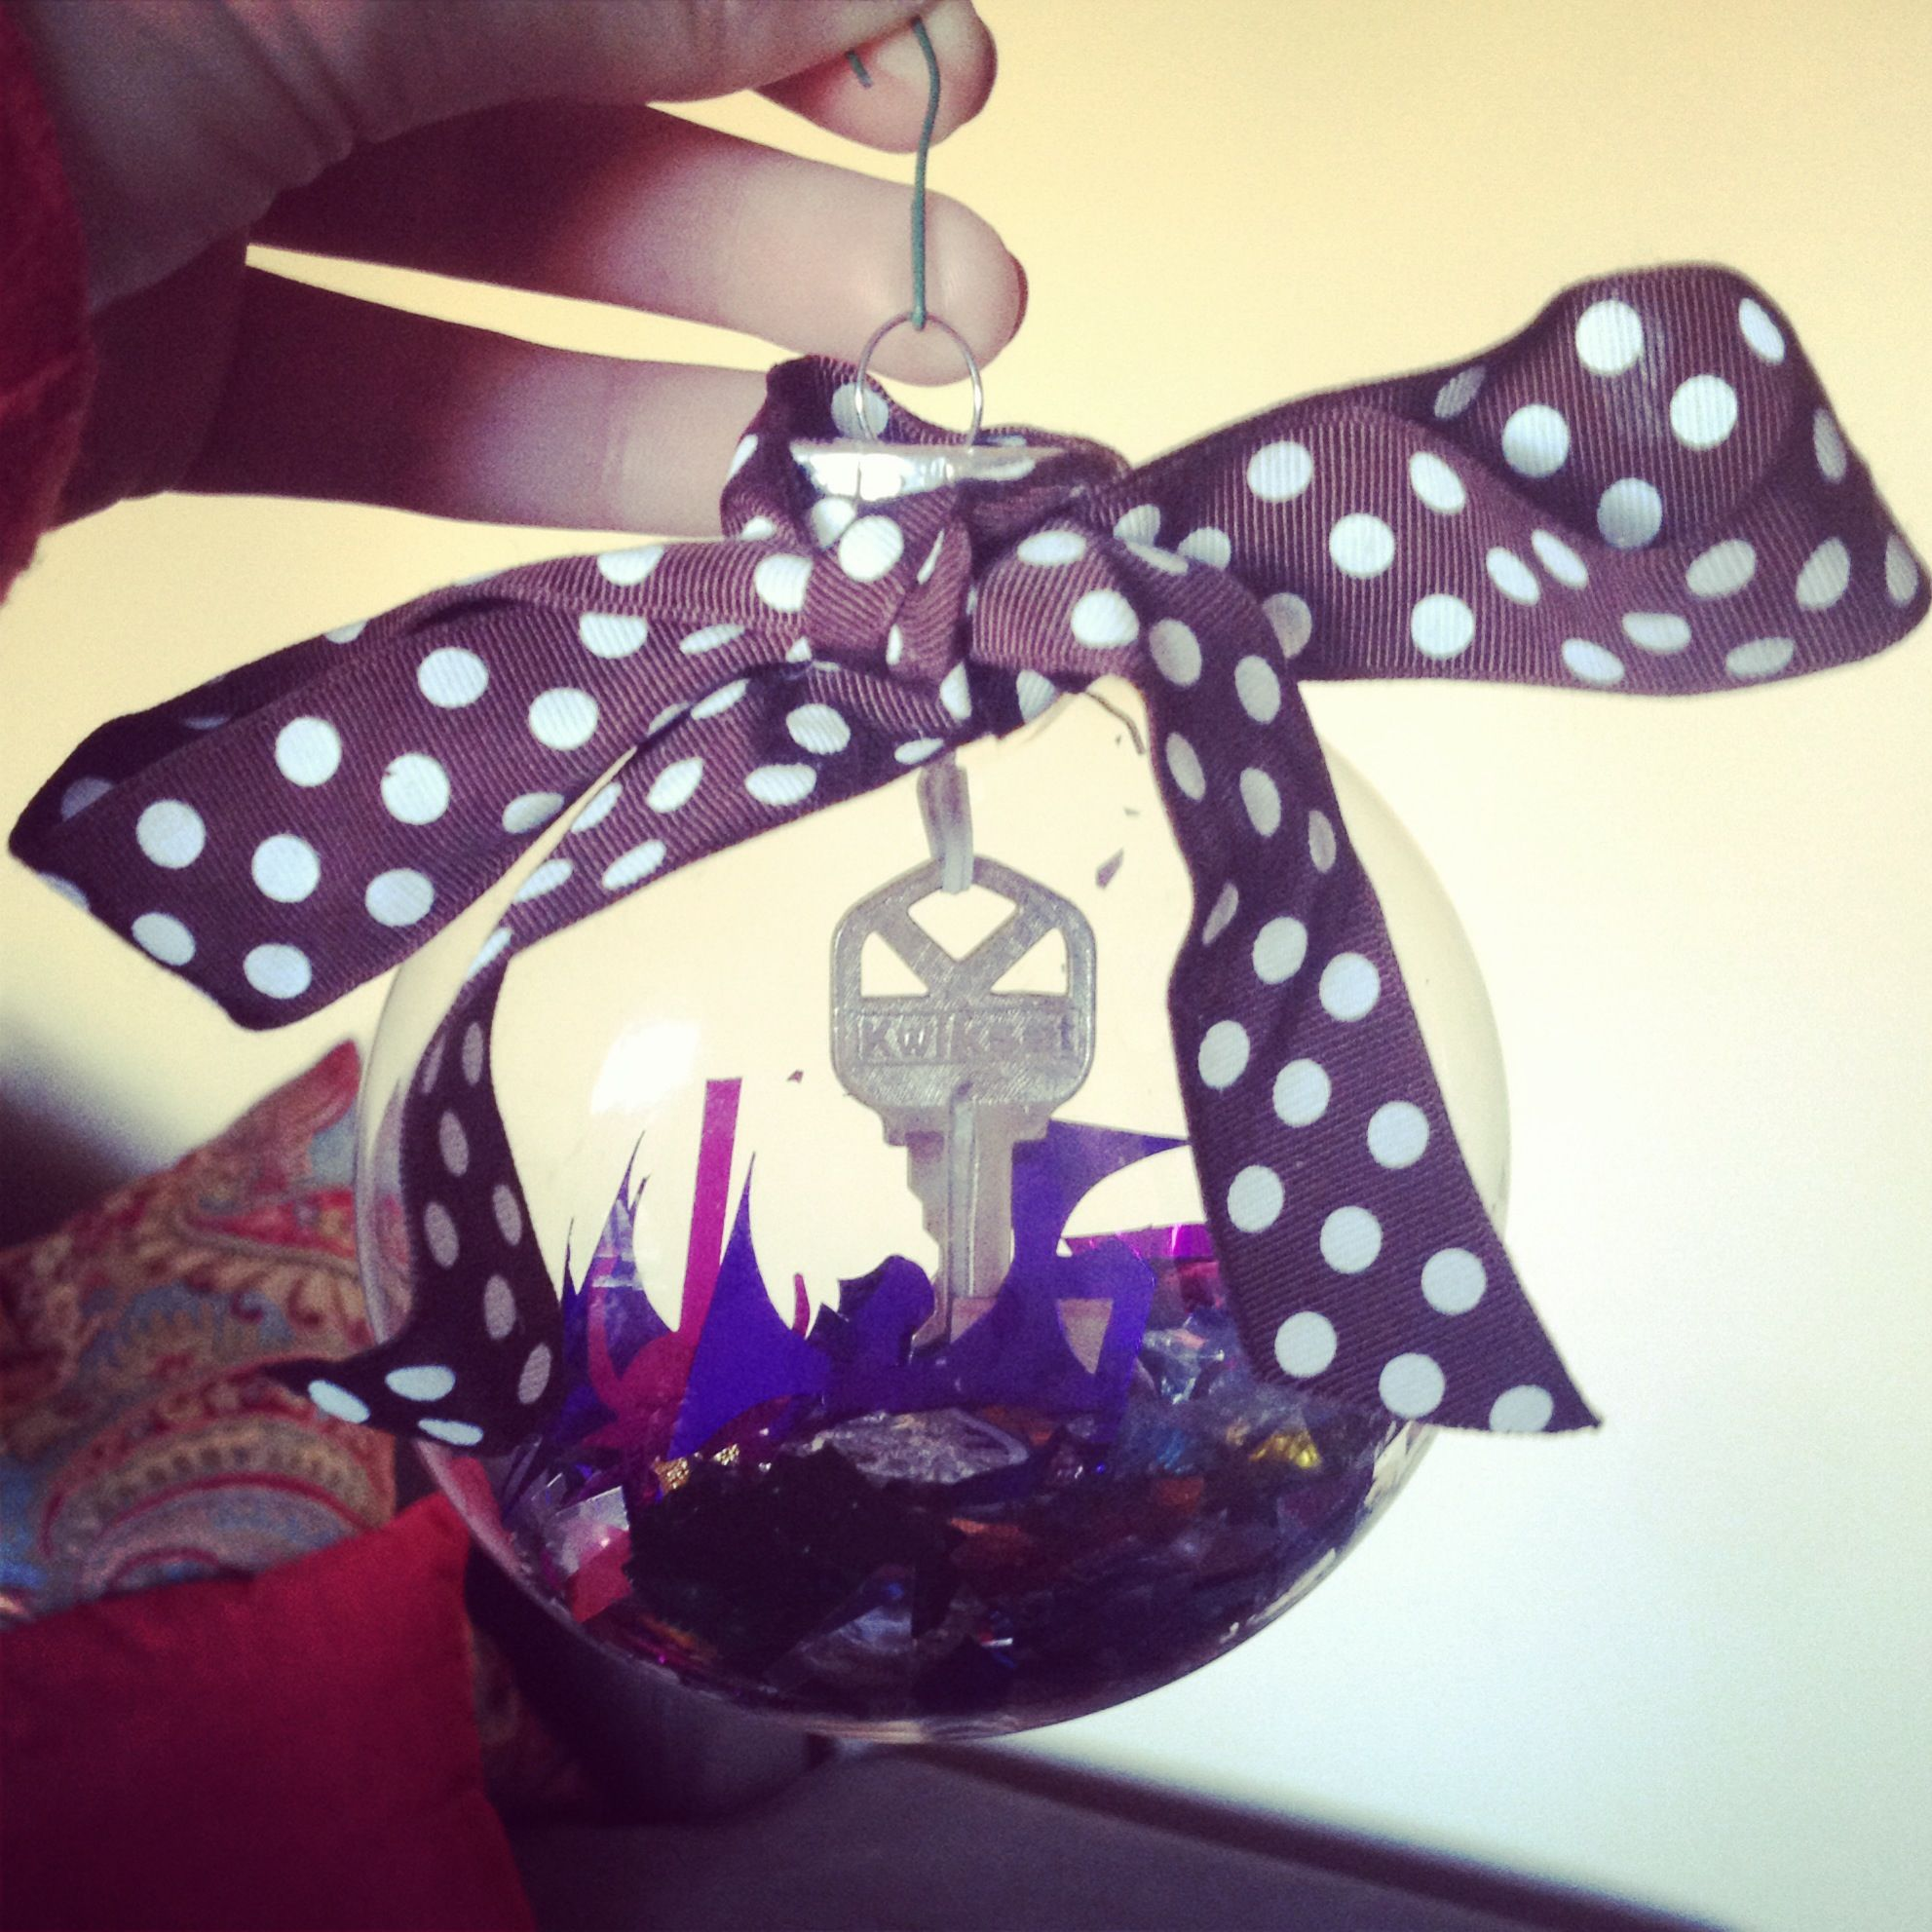 First apartment ornament - First House Key Ornament Ball Key Confetti Ribbon Done